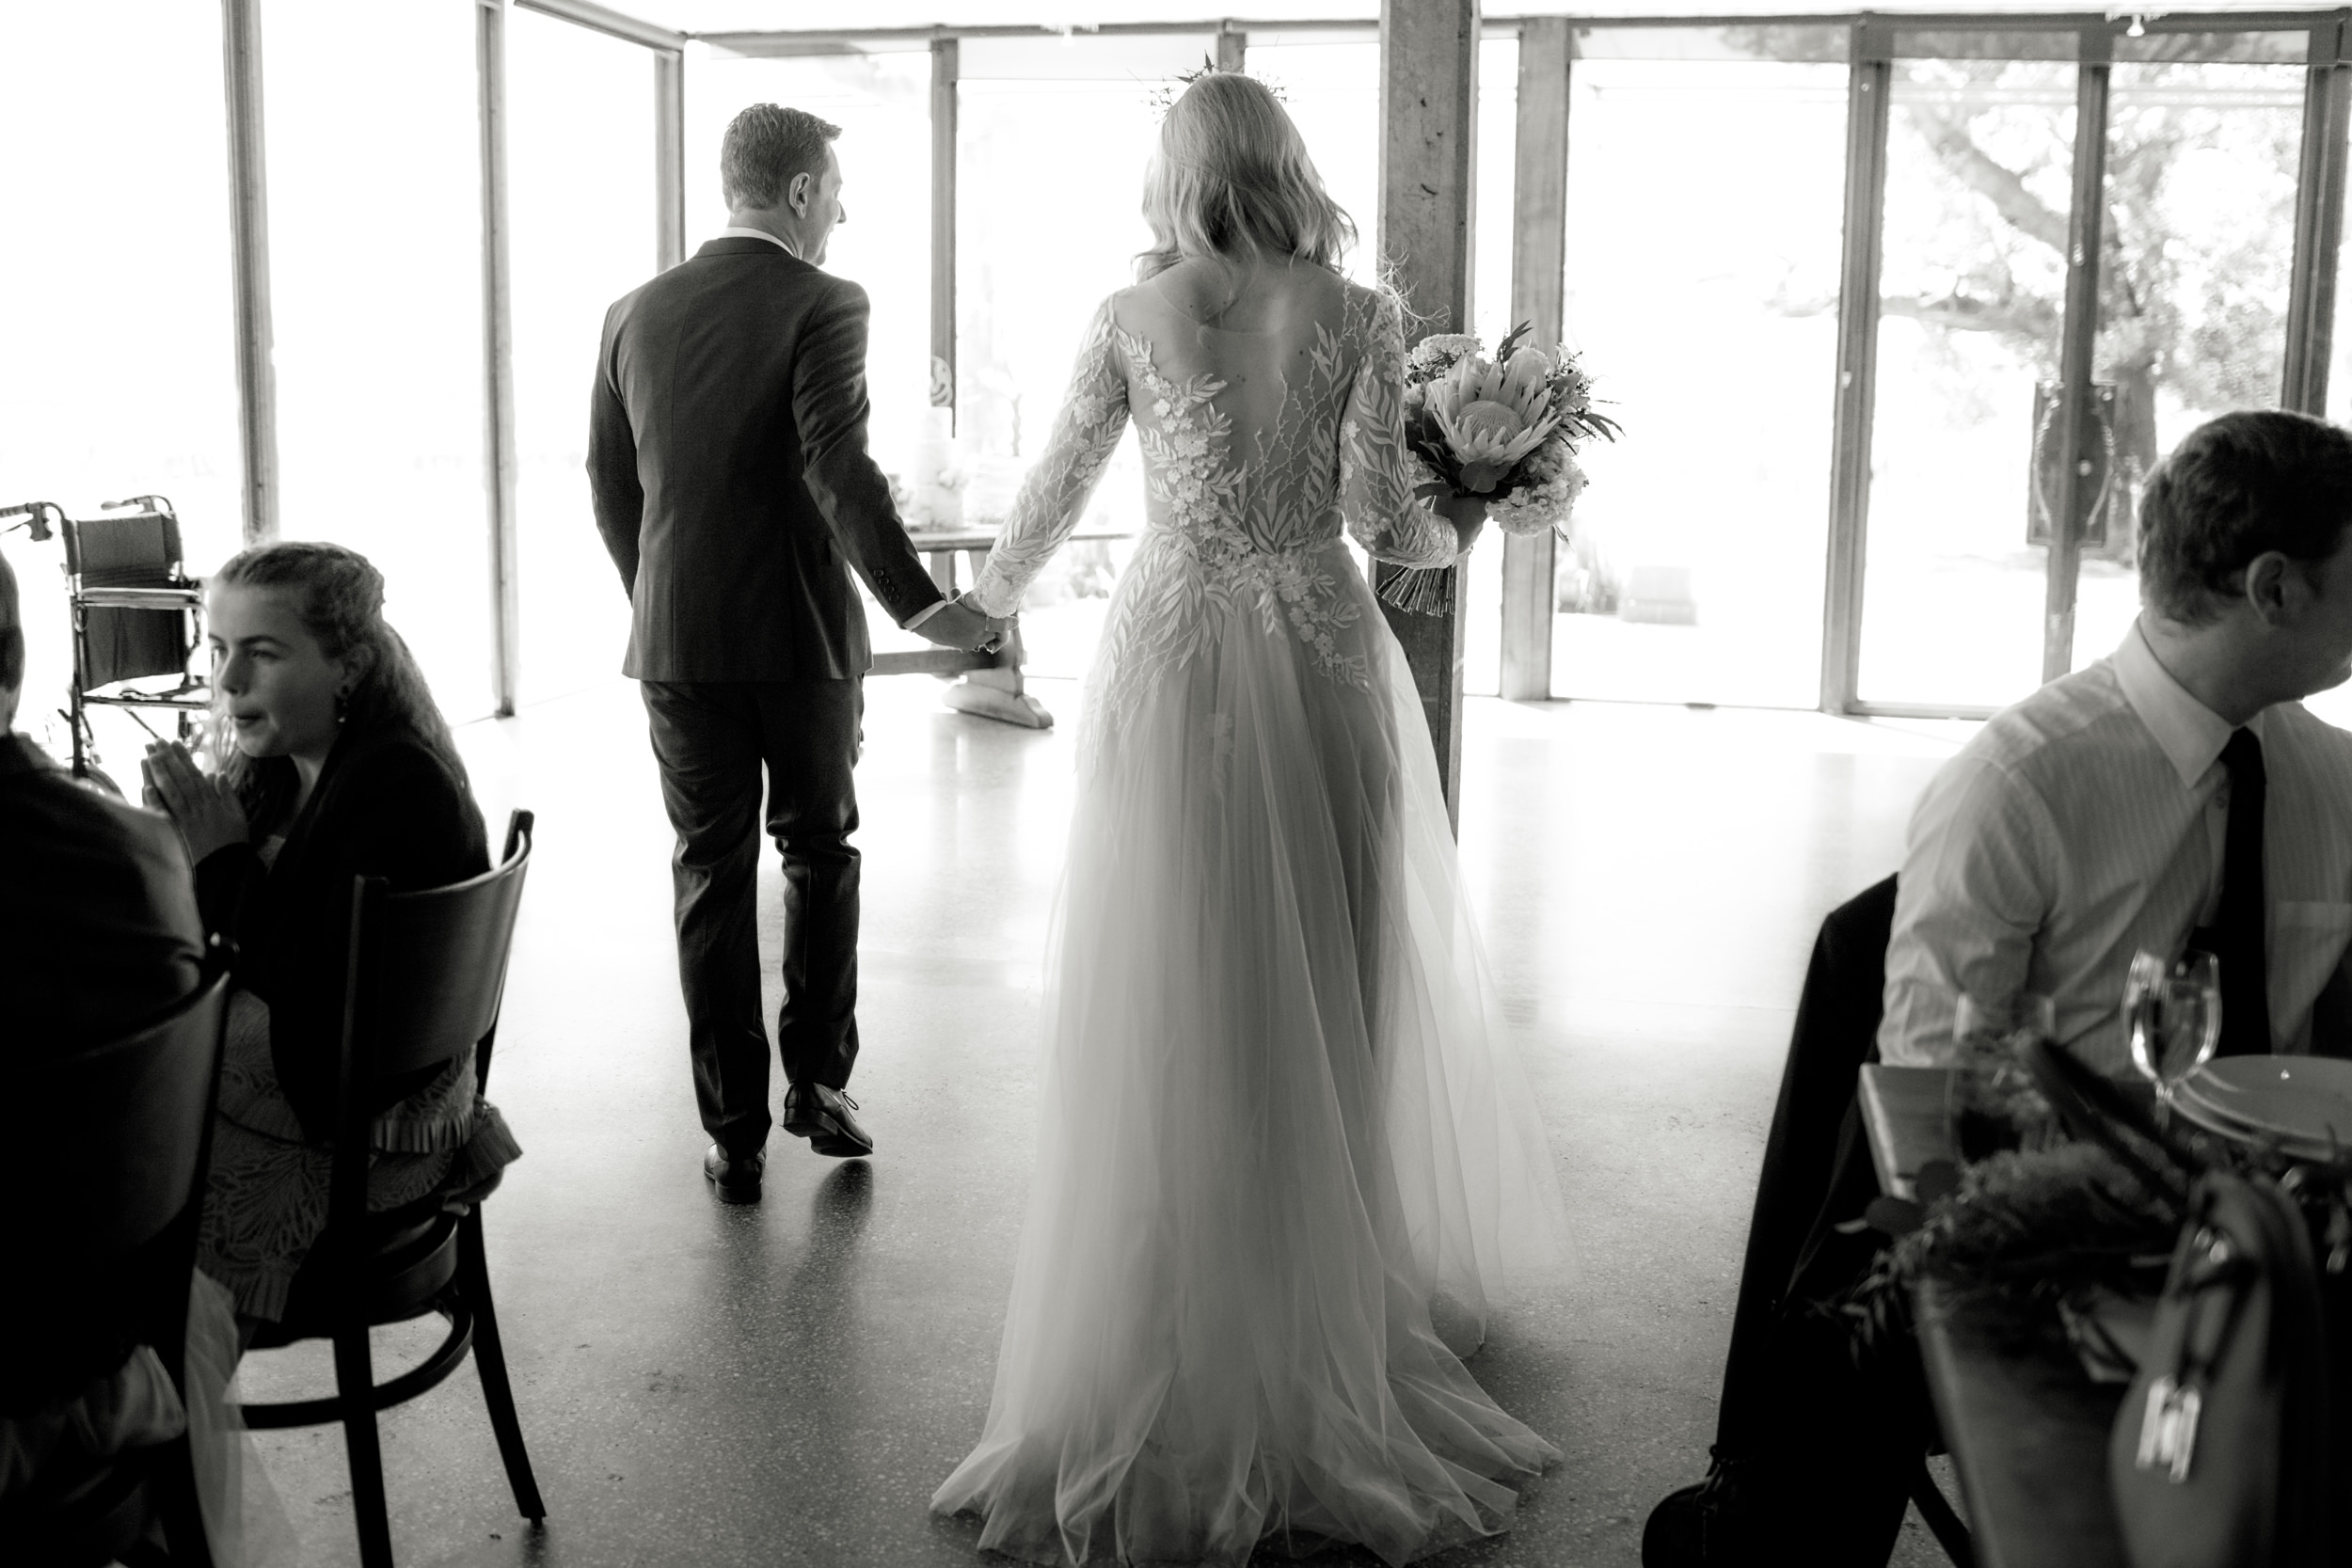 I-Got-You-Babe-&.Co.-Stones-of-the-Yarra-Valley-Wedding-Beverly-Ross0134.JPG